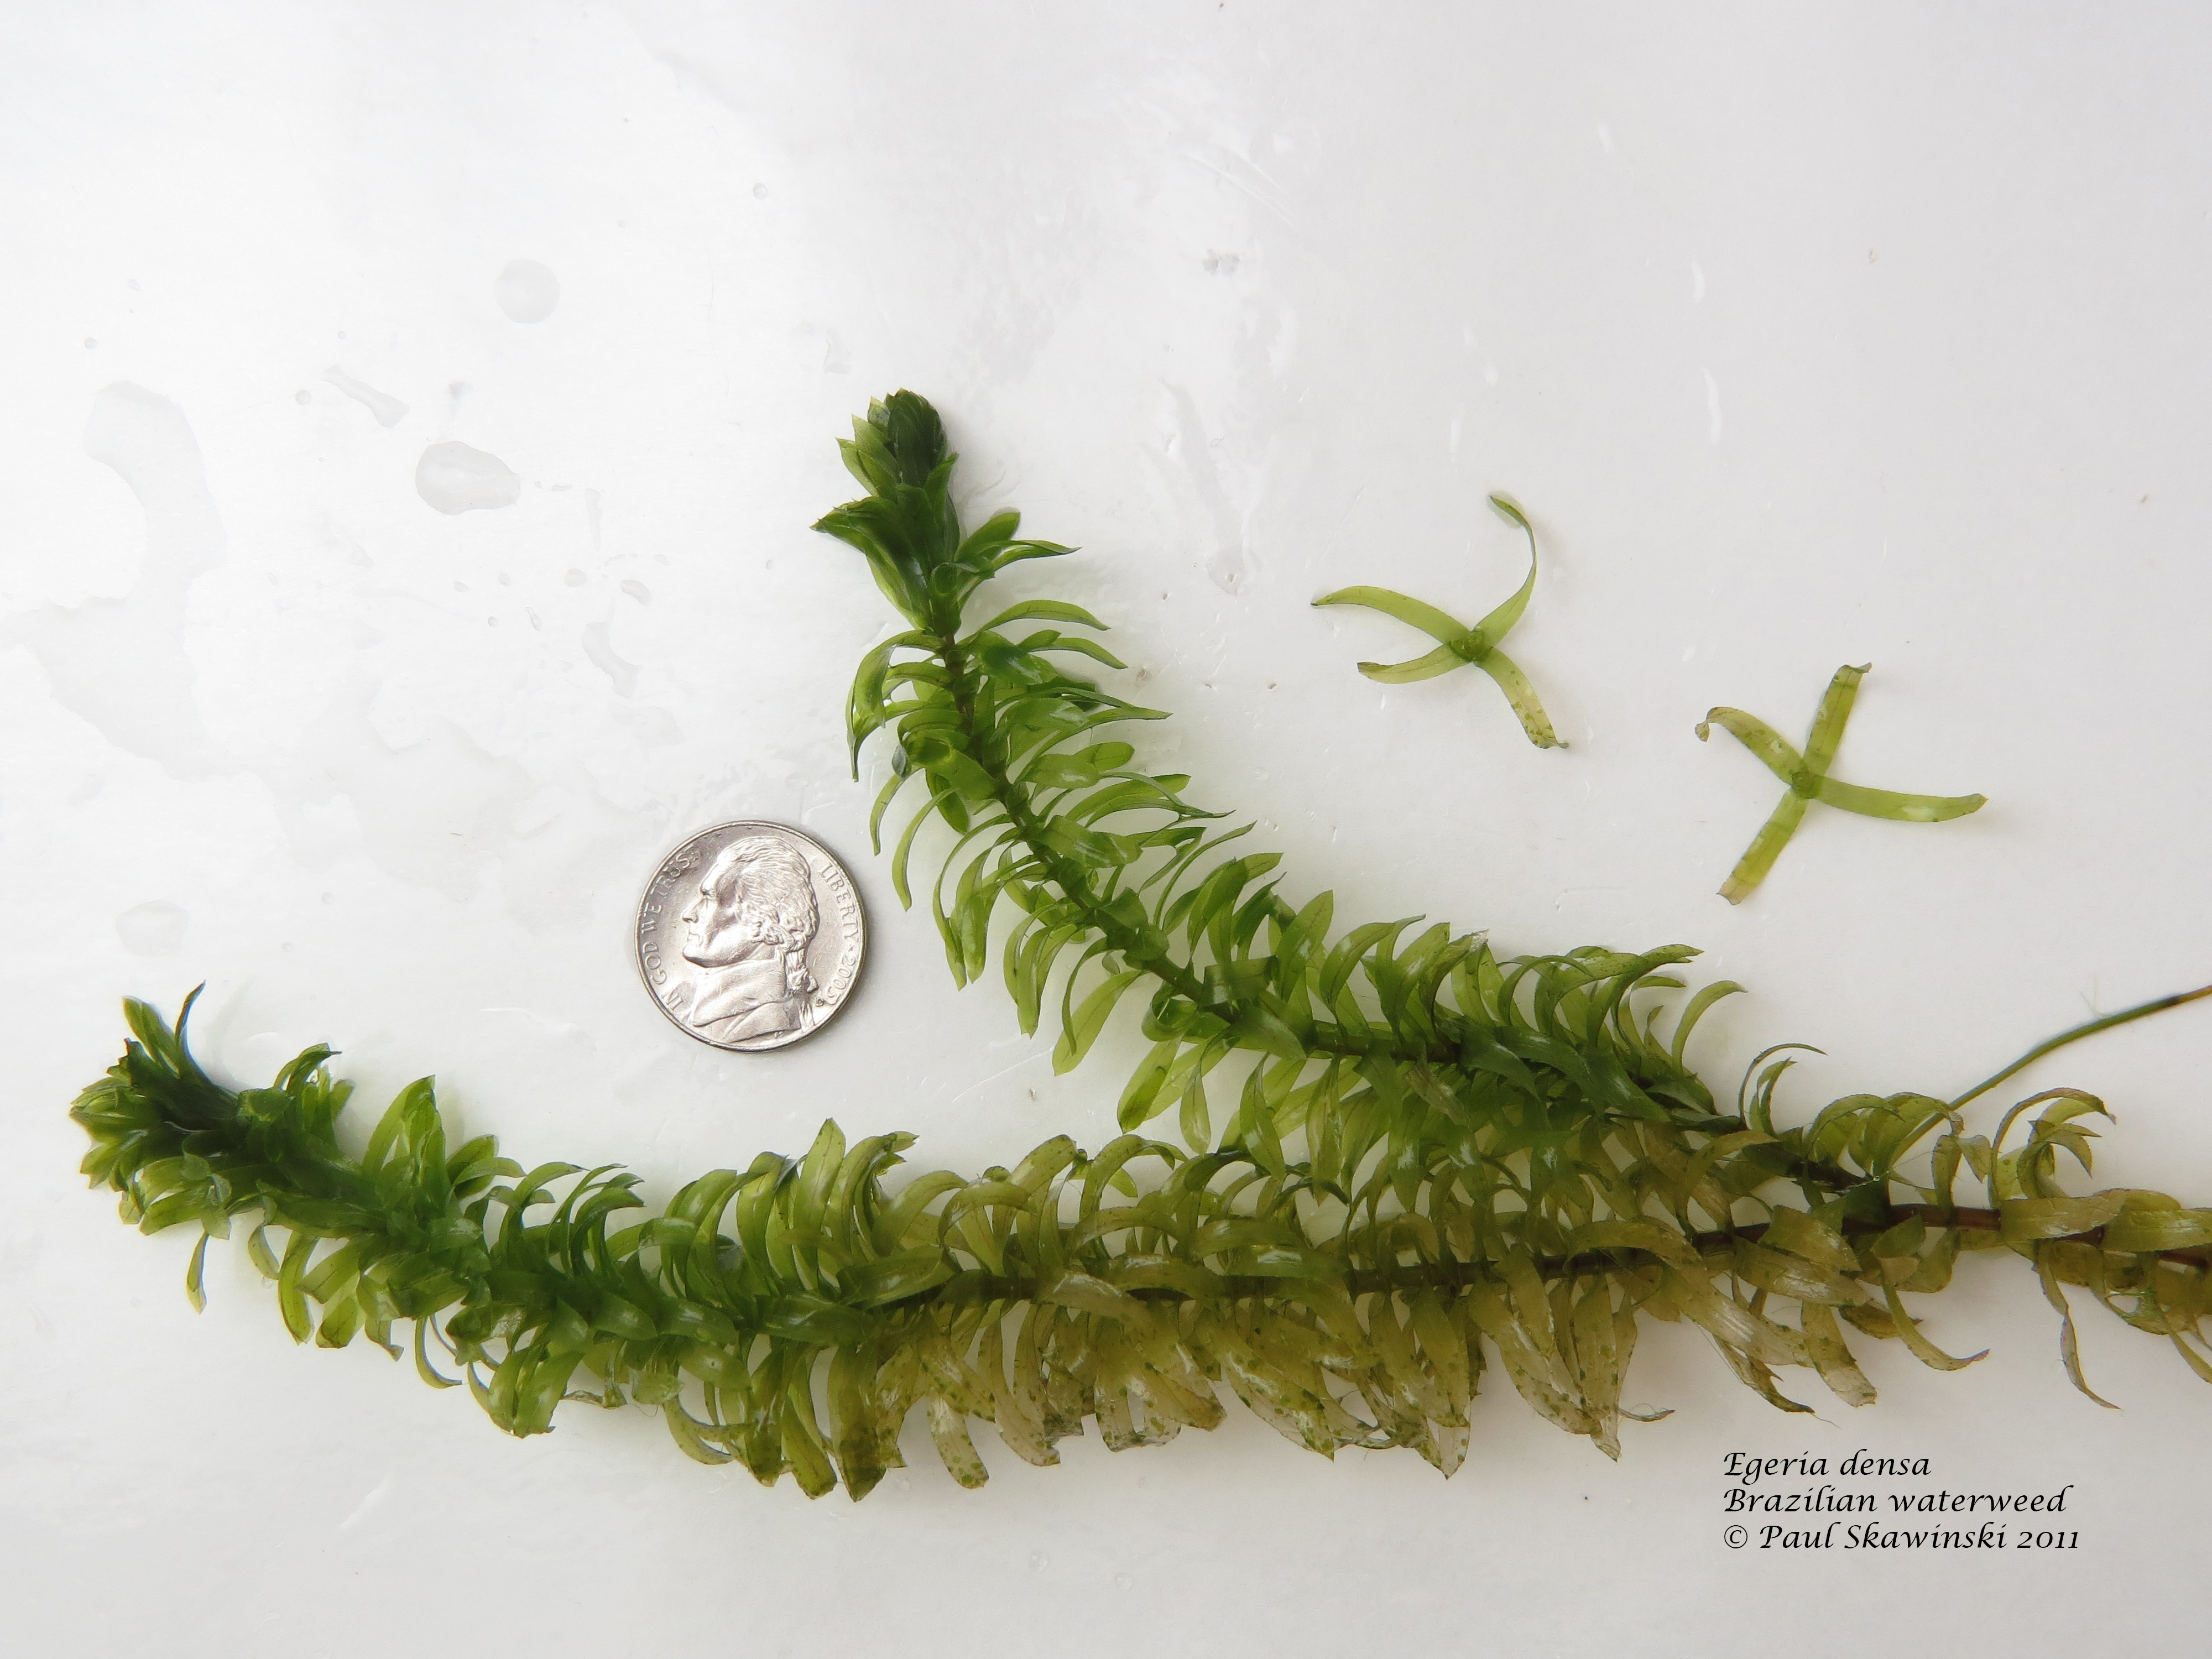 UW-Extension Lakes Aquatic Plant ID Training – June 27th, 28th, or 29th, 2017